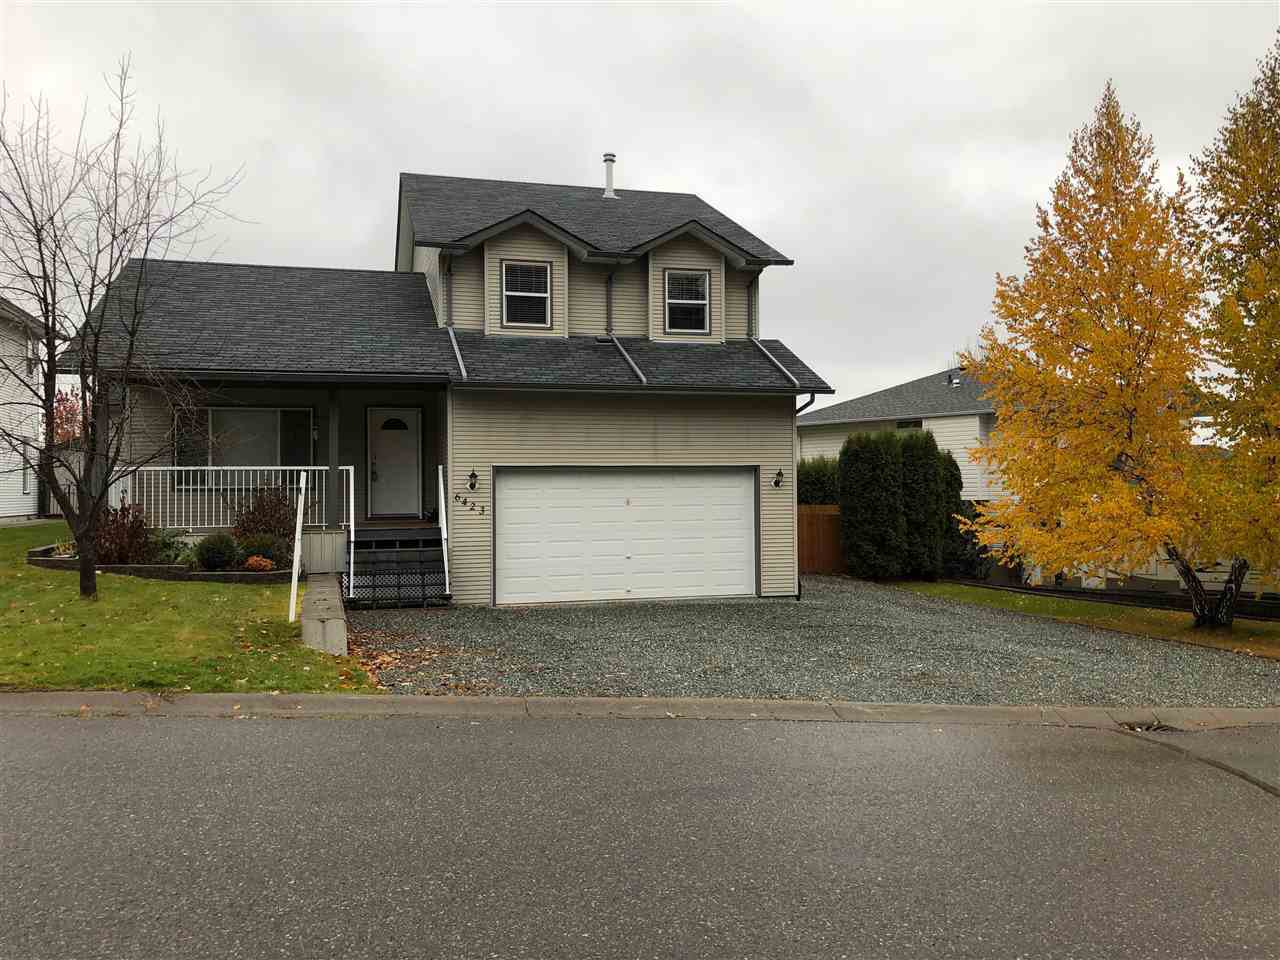 Main Photo: 6423 BURKITT Road in Prince George: Hart Highlands House for sale (PG City North (Zone 73))  : MLS®# R2414706